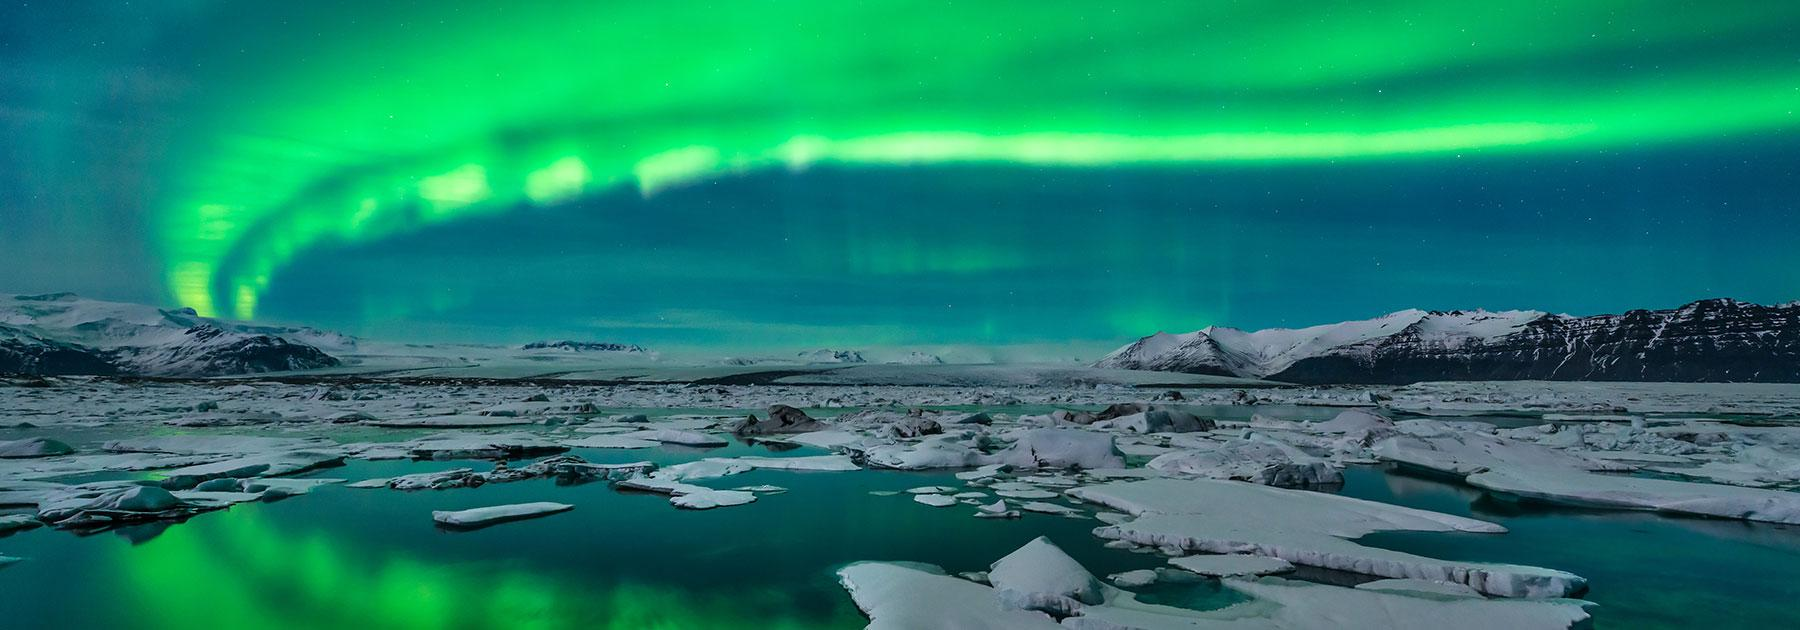 Iceland Vacations with Airfare | Trip to Iceland from go-today